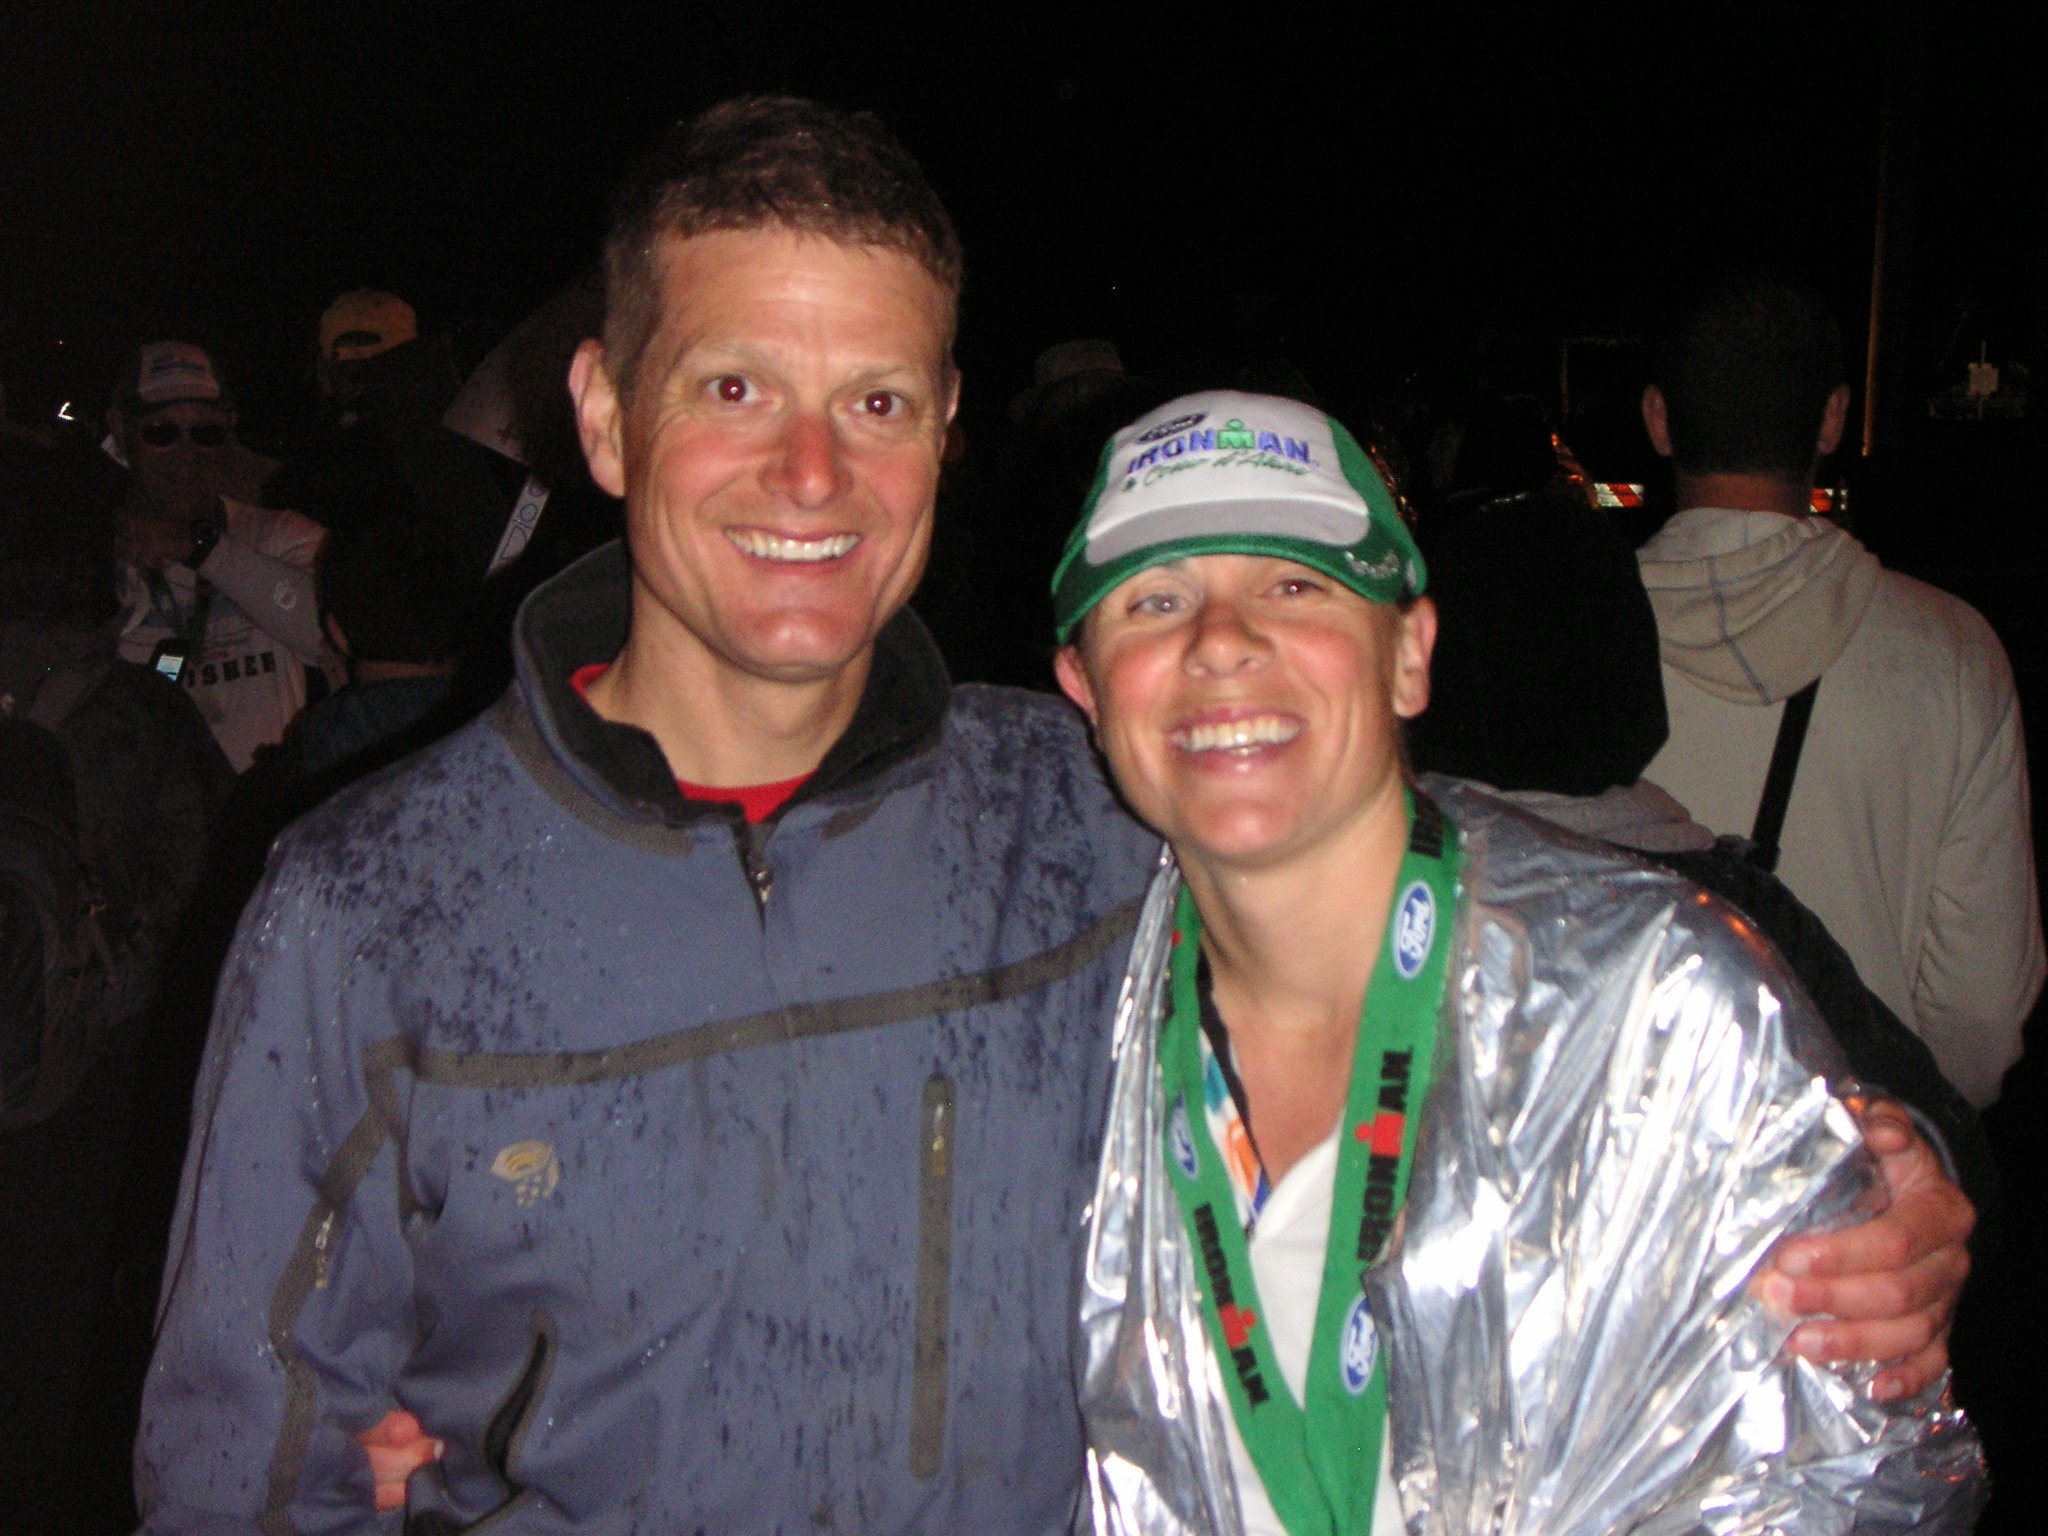 2009 IMCDA Happy Race Finishers!